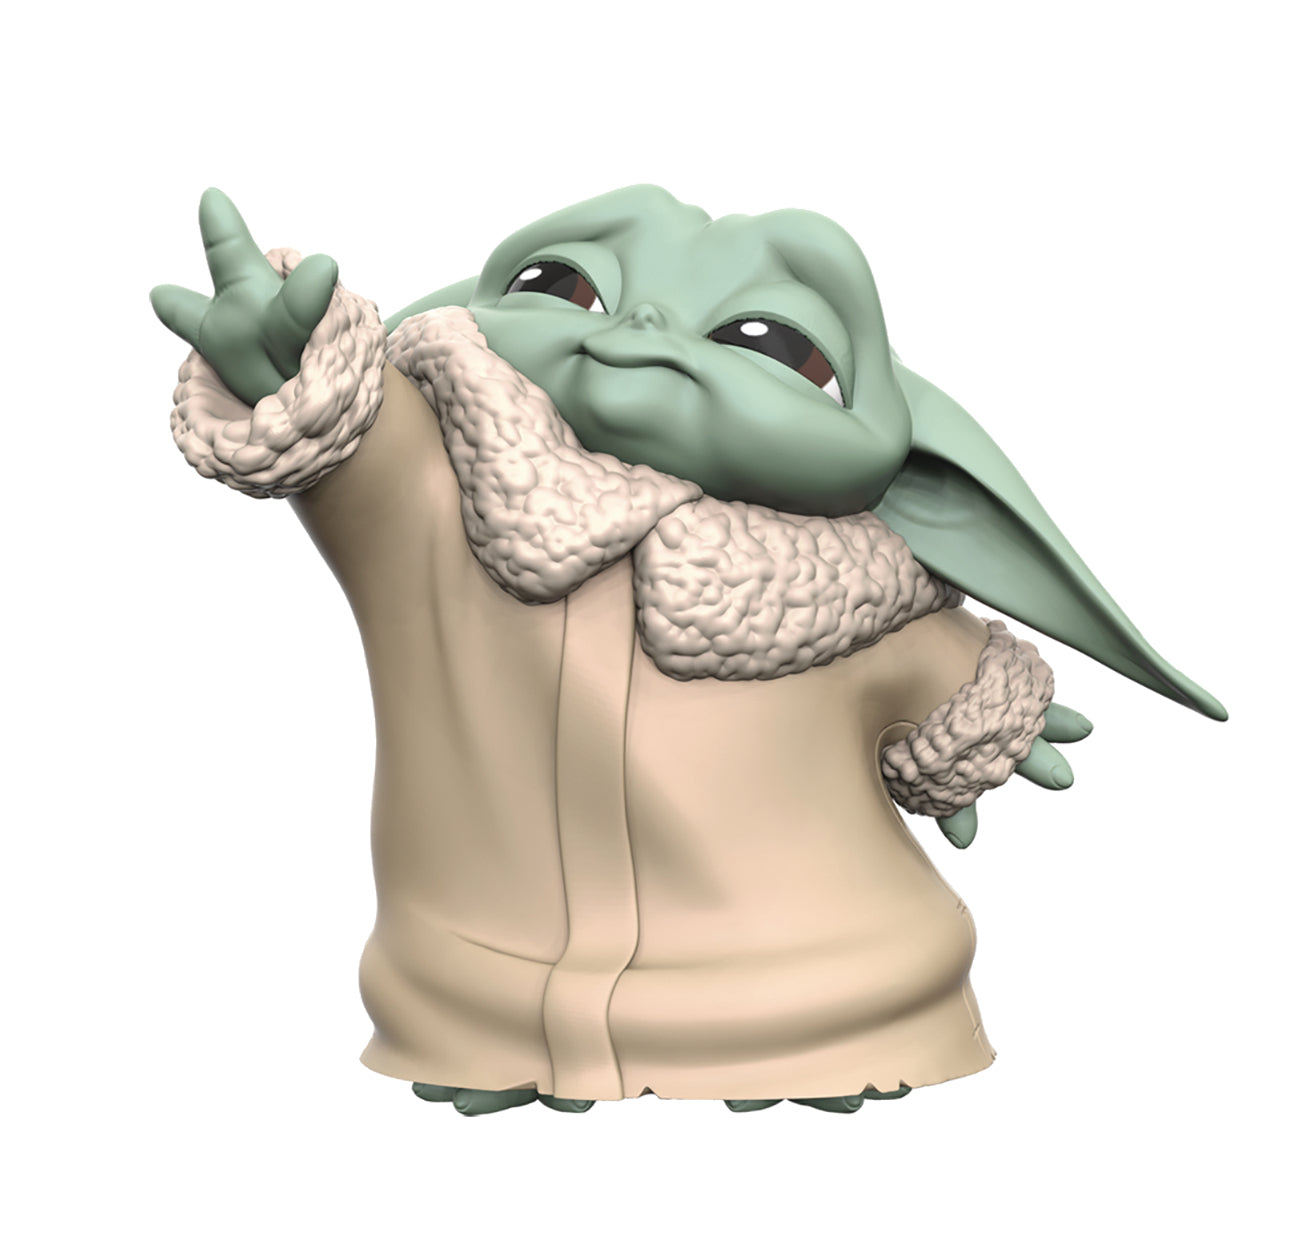 SW BABY YODA THE FORCE FIGURINE | BD Cosmos